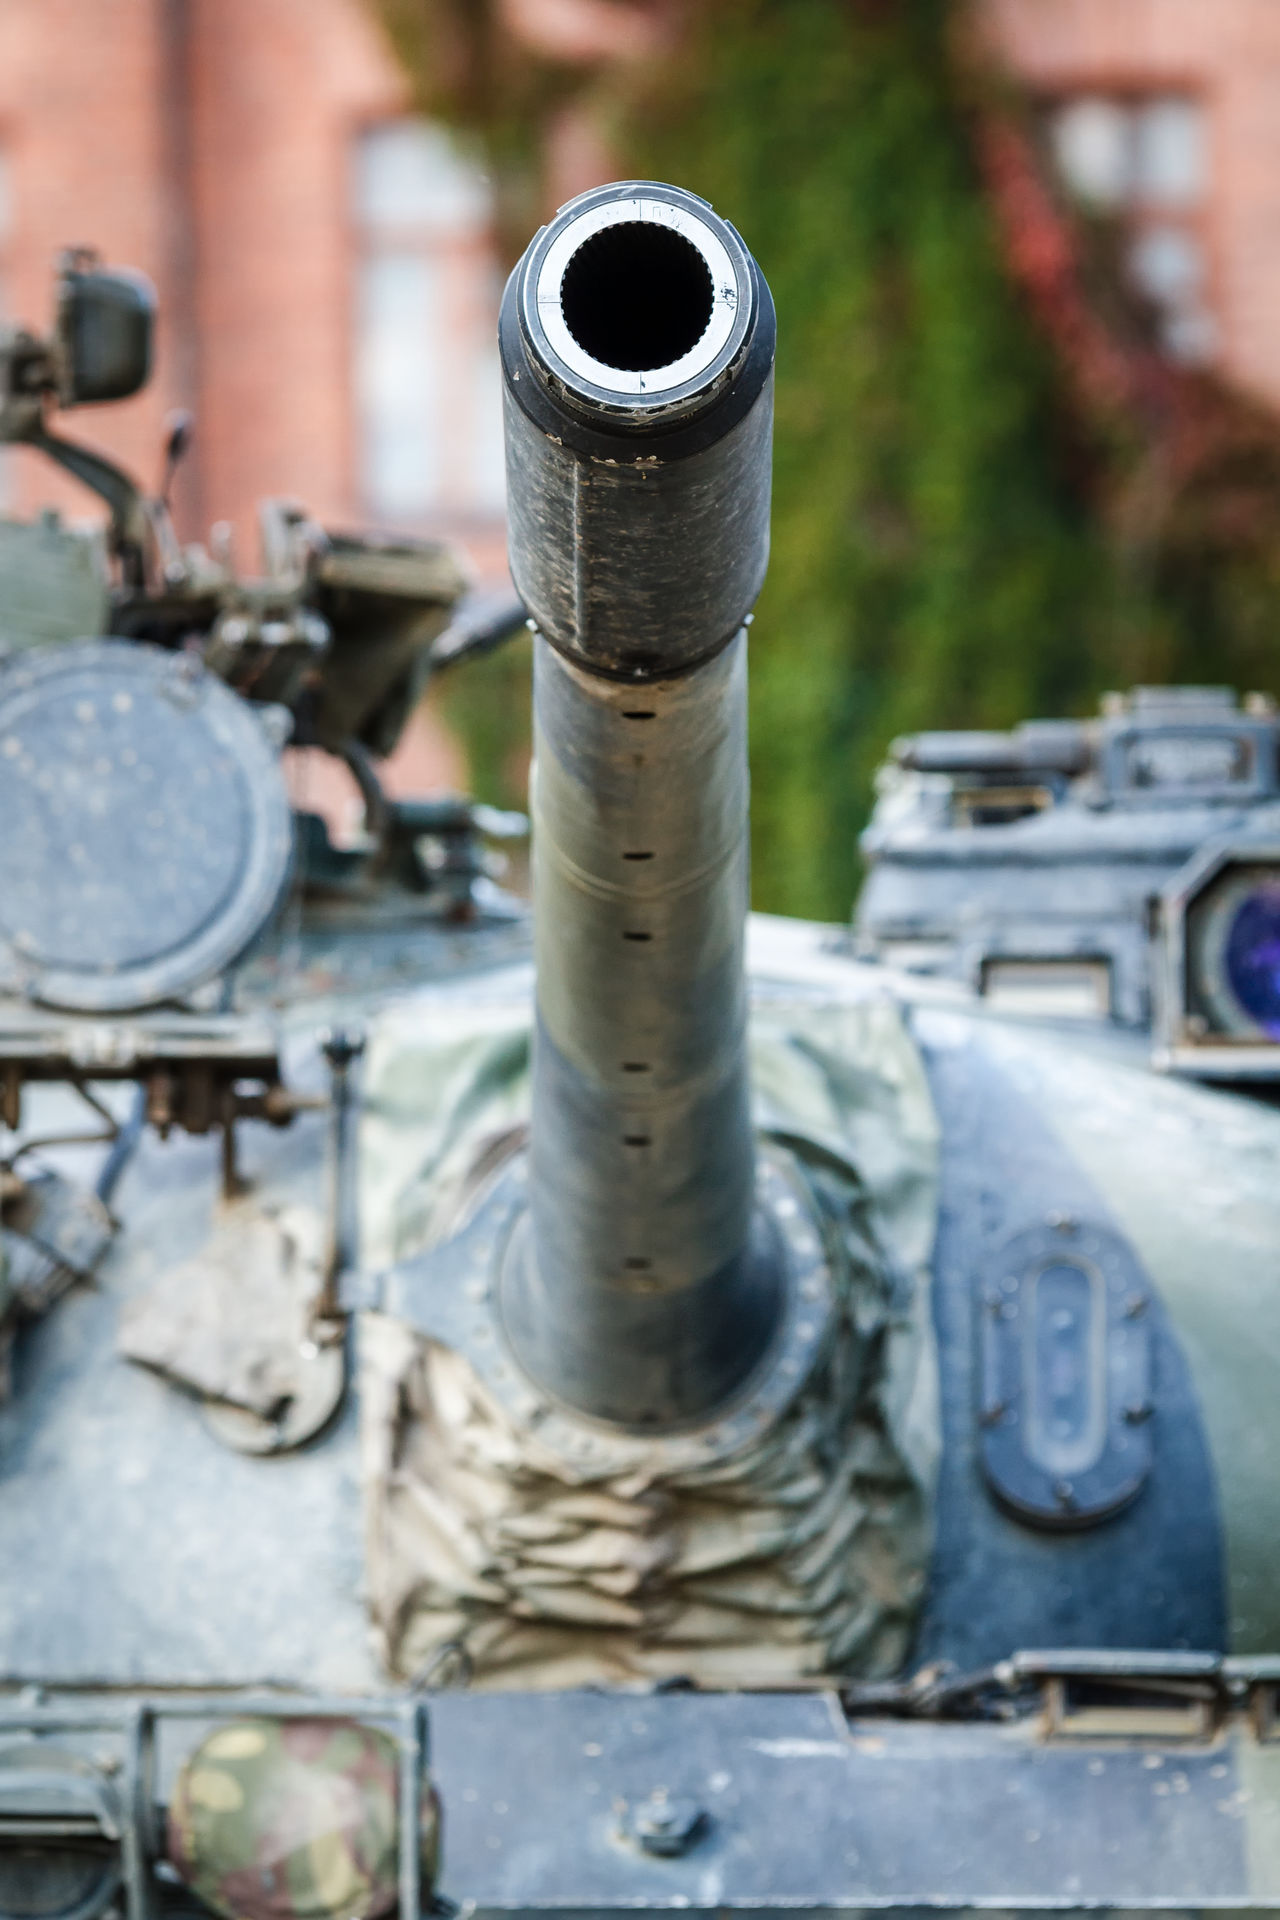 War tank turret closeup. A barrel of a military tank pointed to the sky. Old barrack building on the background. Aggressive Armor Artistic Barrel Bolt Cannon Close-up Dangerous Day Explosive Metal Metal Industry Military No People Nut - Fastener Outdoors Tank Turret Water Weapon Weapons Of War